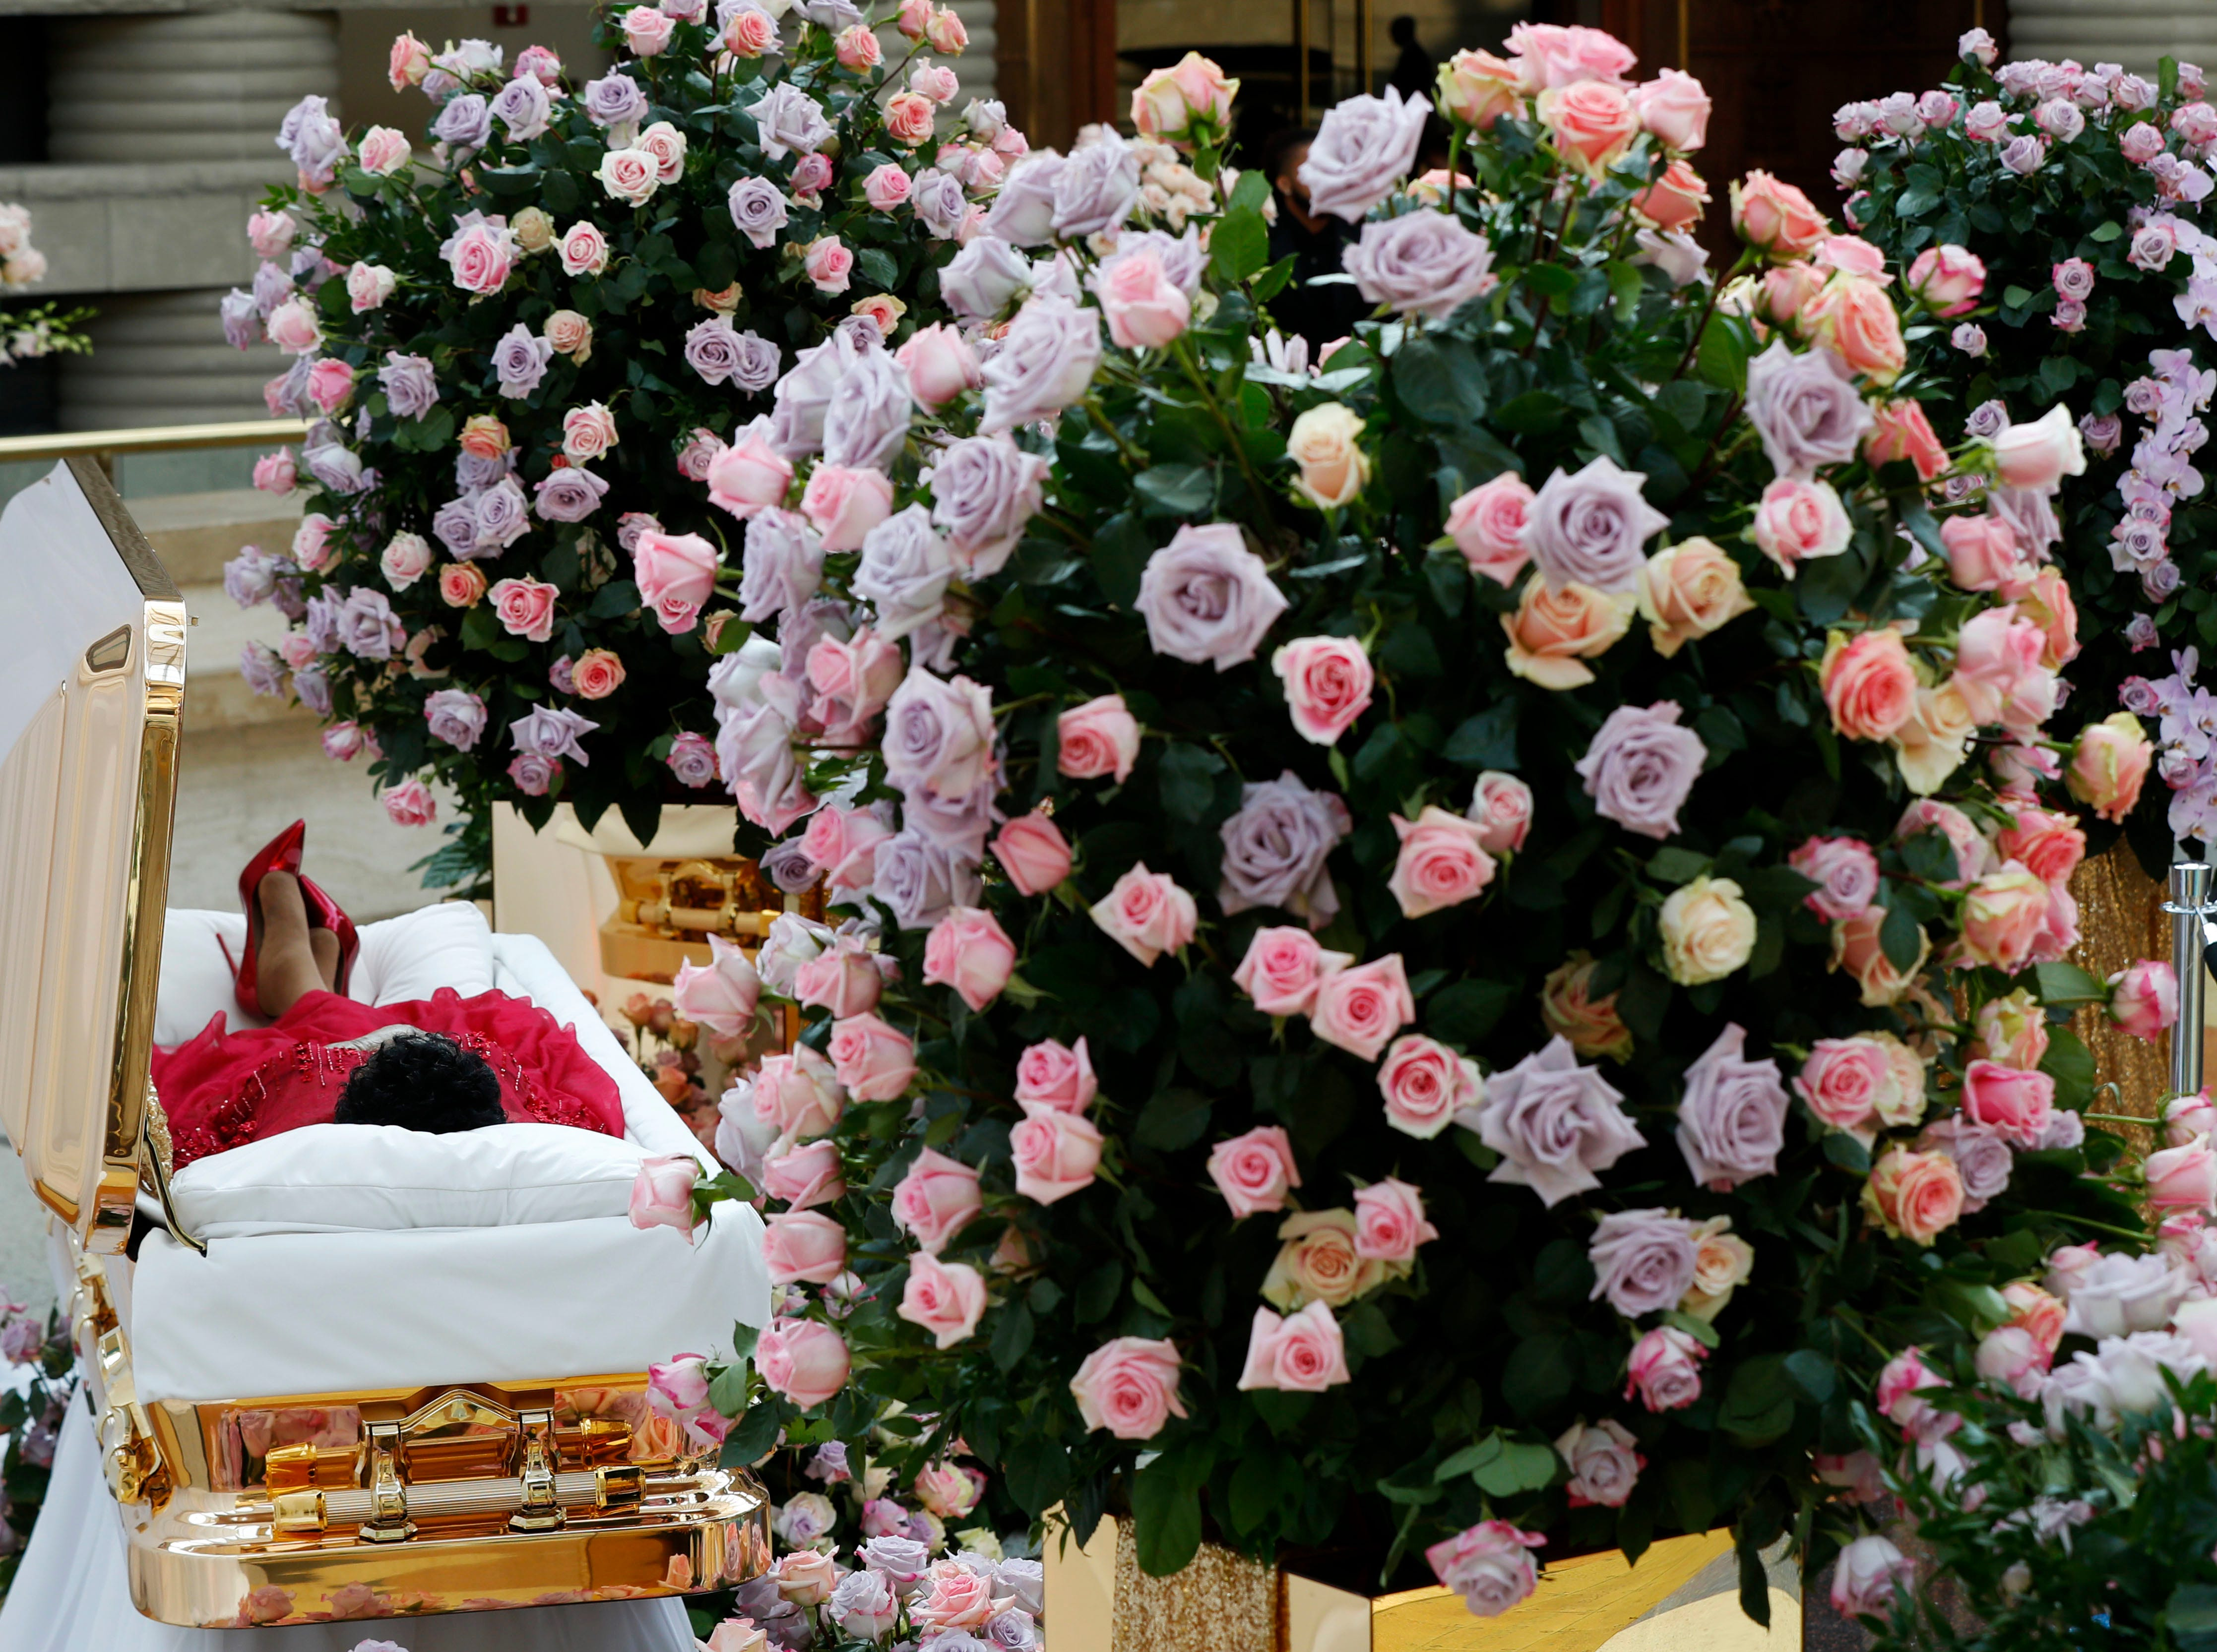 Aug. 28, 2018: Aretha Franklin lies in her casket at Charles H. Wright Museum of African American History during a public visitation in Detroit. Franklin died Aug. 16, 2018, of pancreatic cancer at the age of 76.